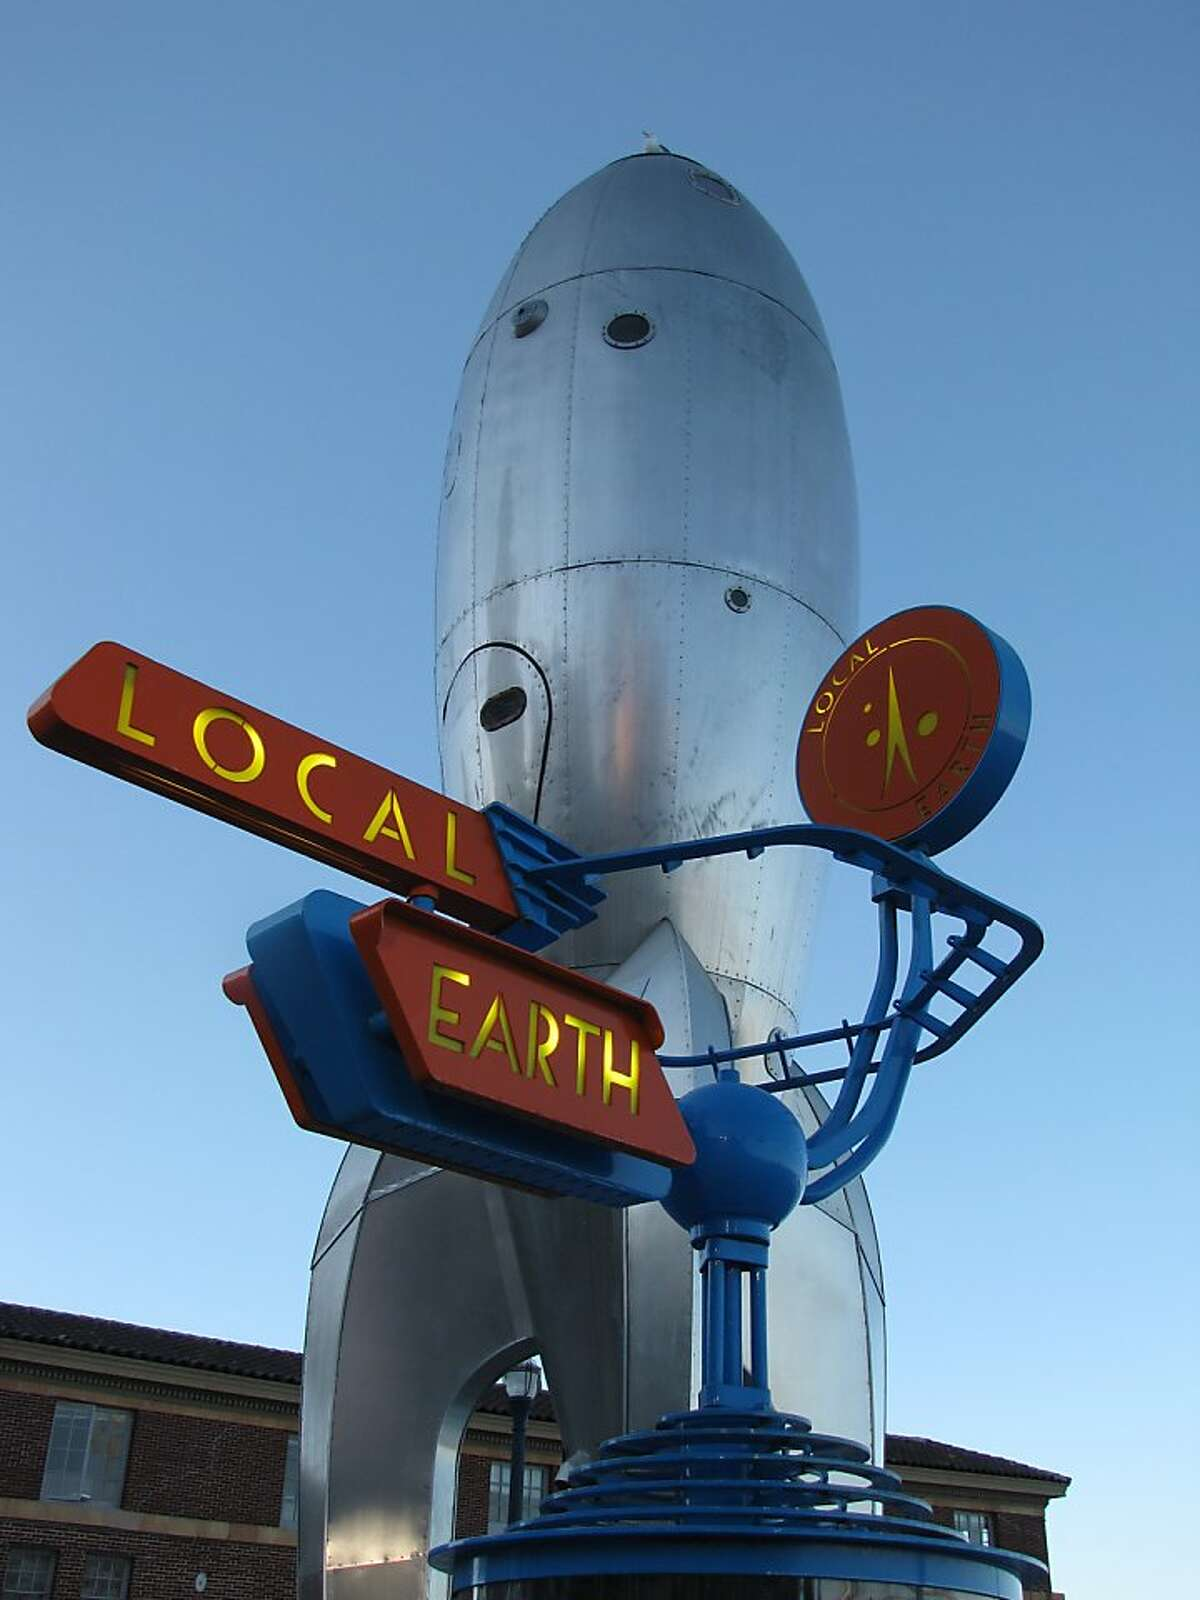 Raygun Gothic Rocketship, on loan to the city by the artists through the Black Rock Arts Foundation, is one of the most inventive pieces of public art in the city, an unexpected counterpoint to the Bay and Embarcadero.